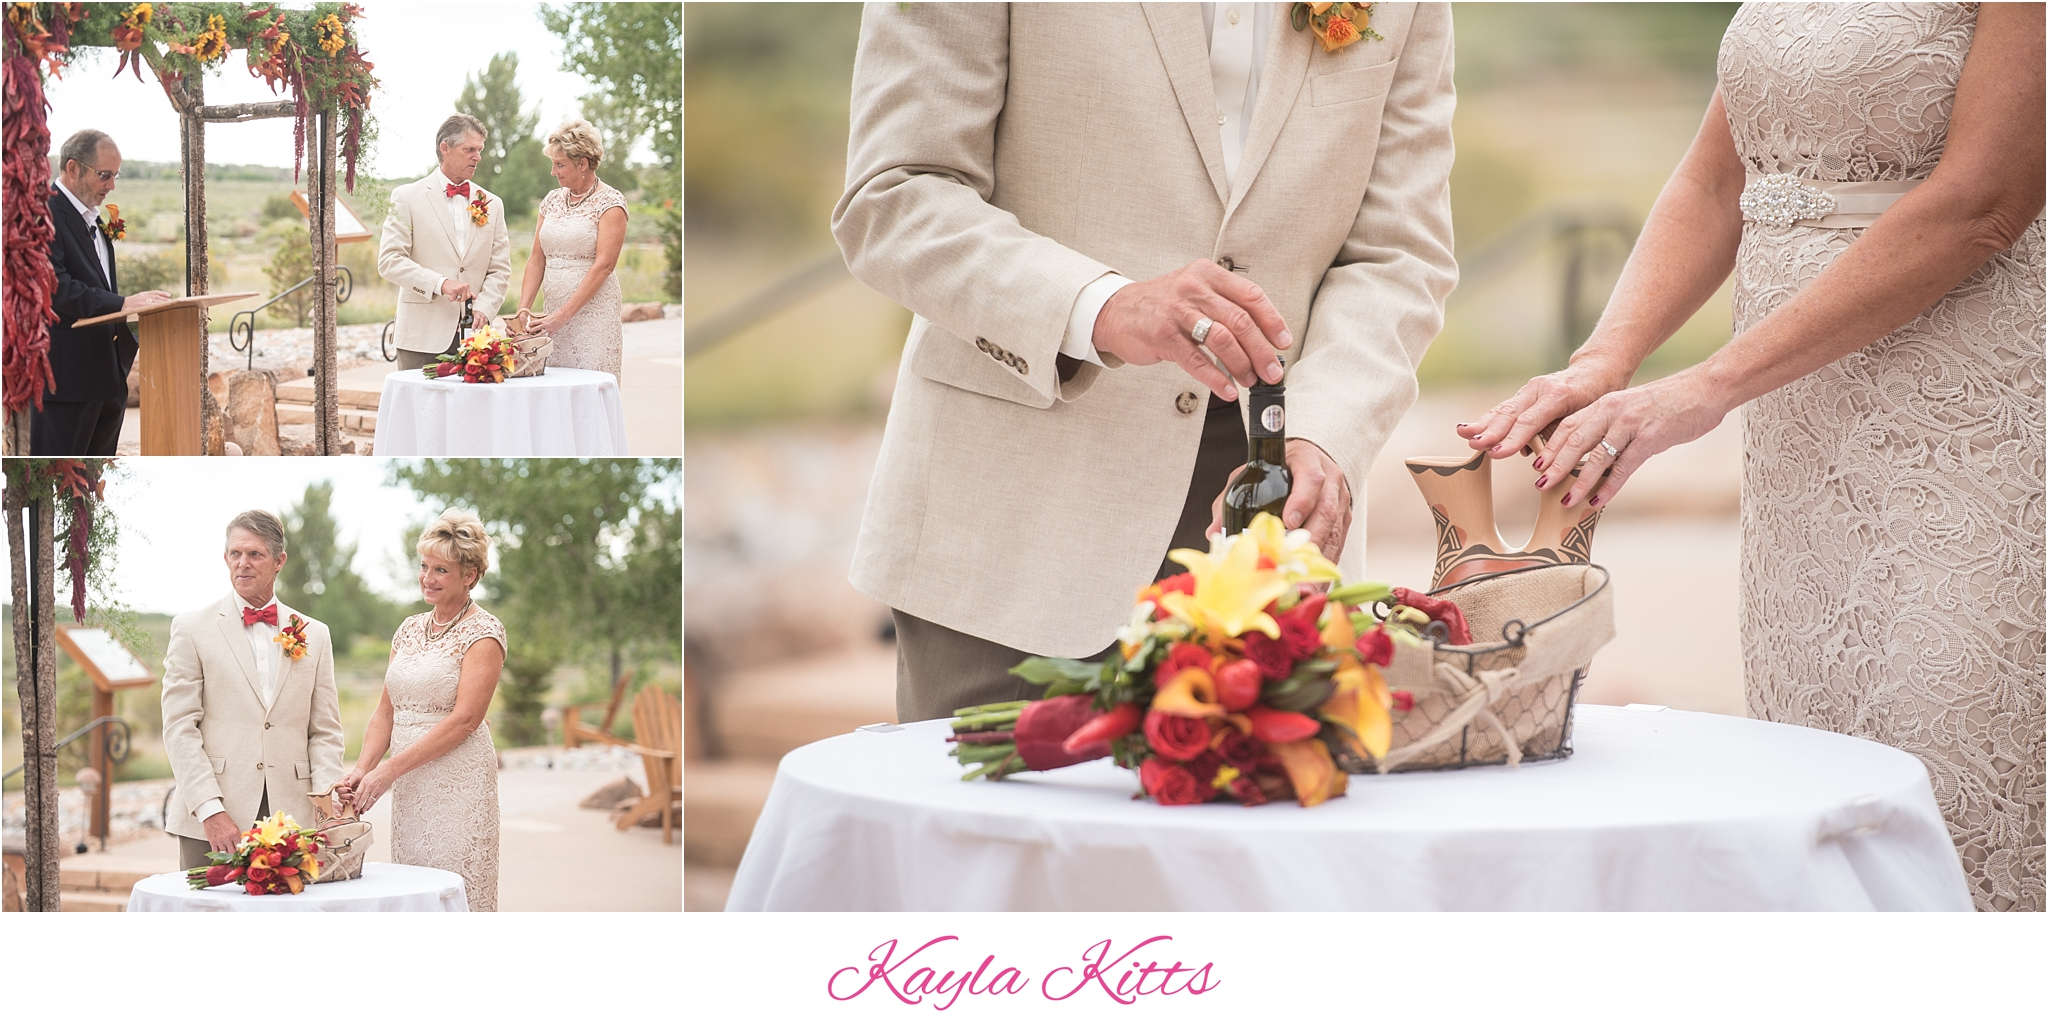 kayla kitts photography - albuquerque wedding photographer - albuquerque wedding photography - albuquerque venue - hyatt tamaya - hyatt tamaya wedding - new mexico wedding photographer_0045.jpg